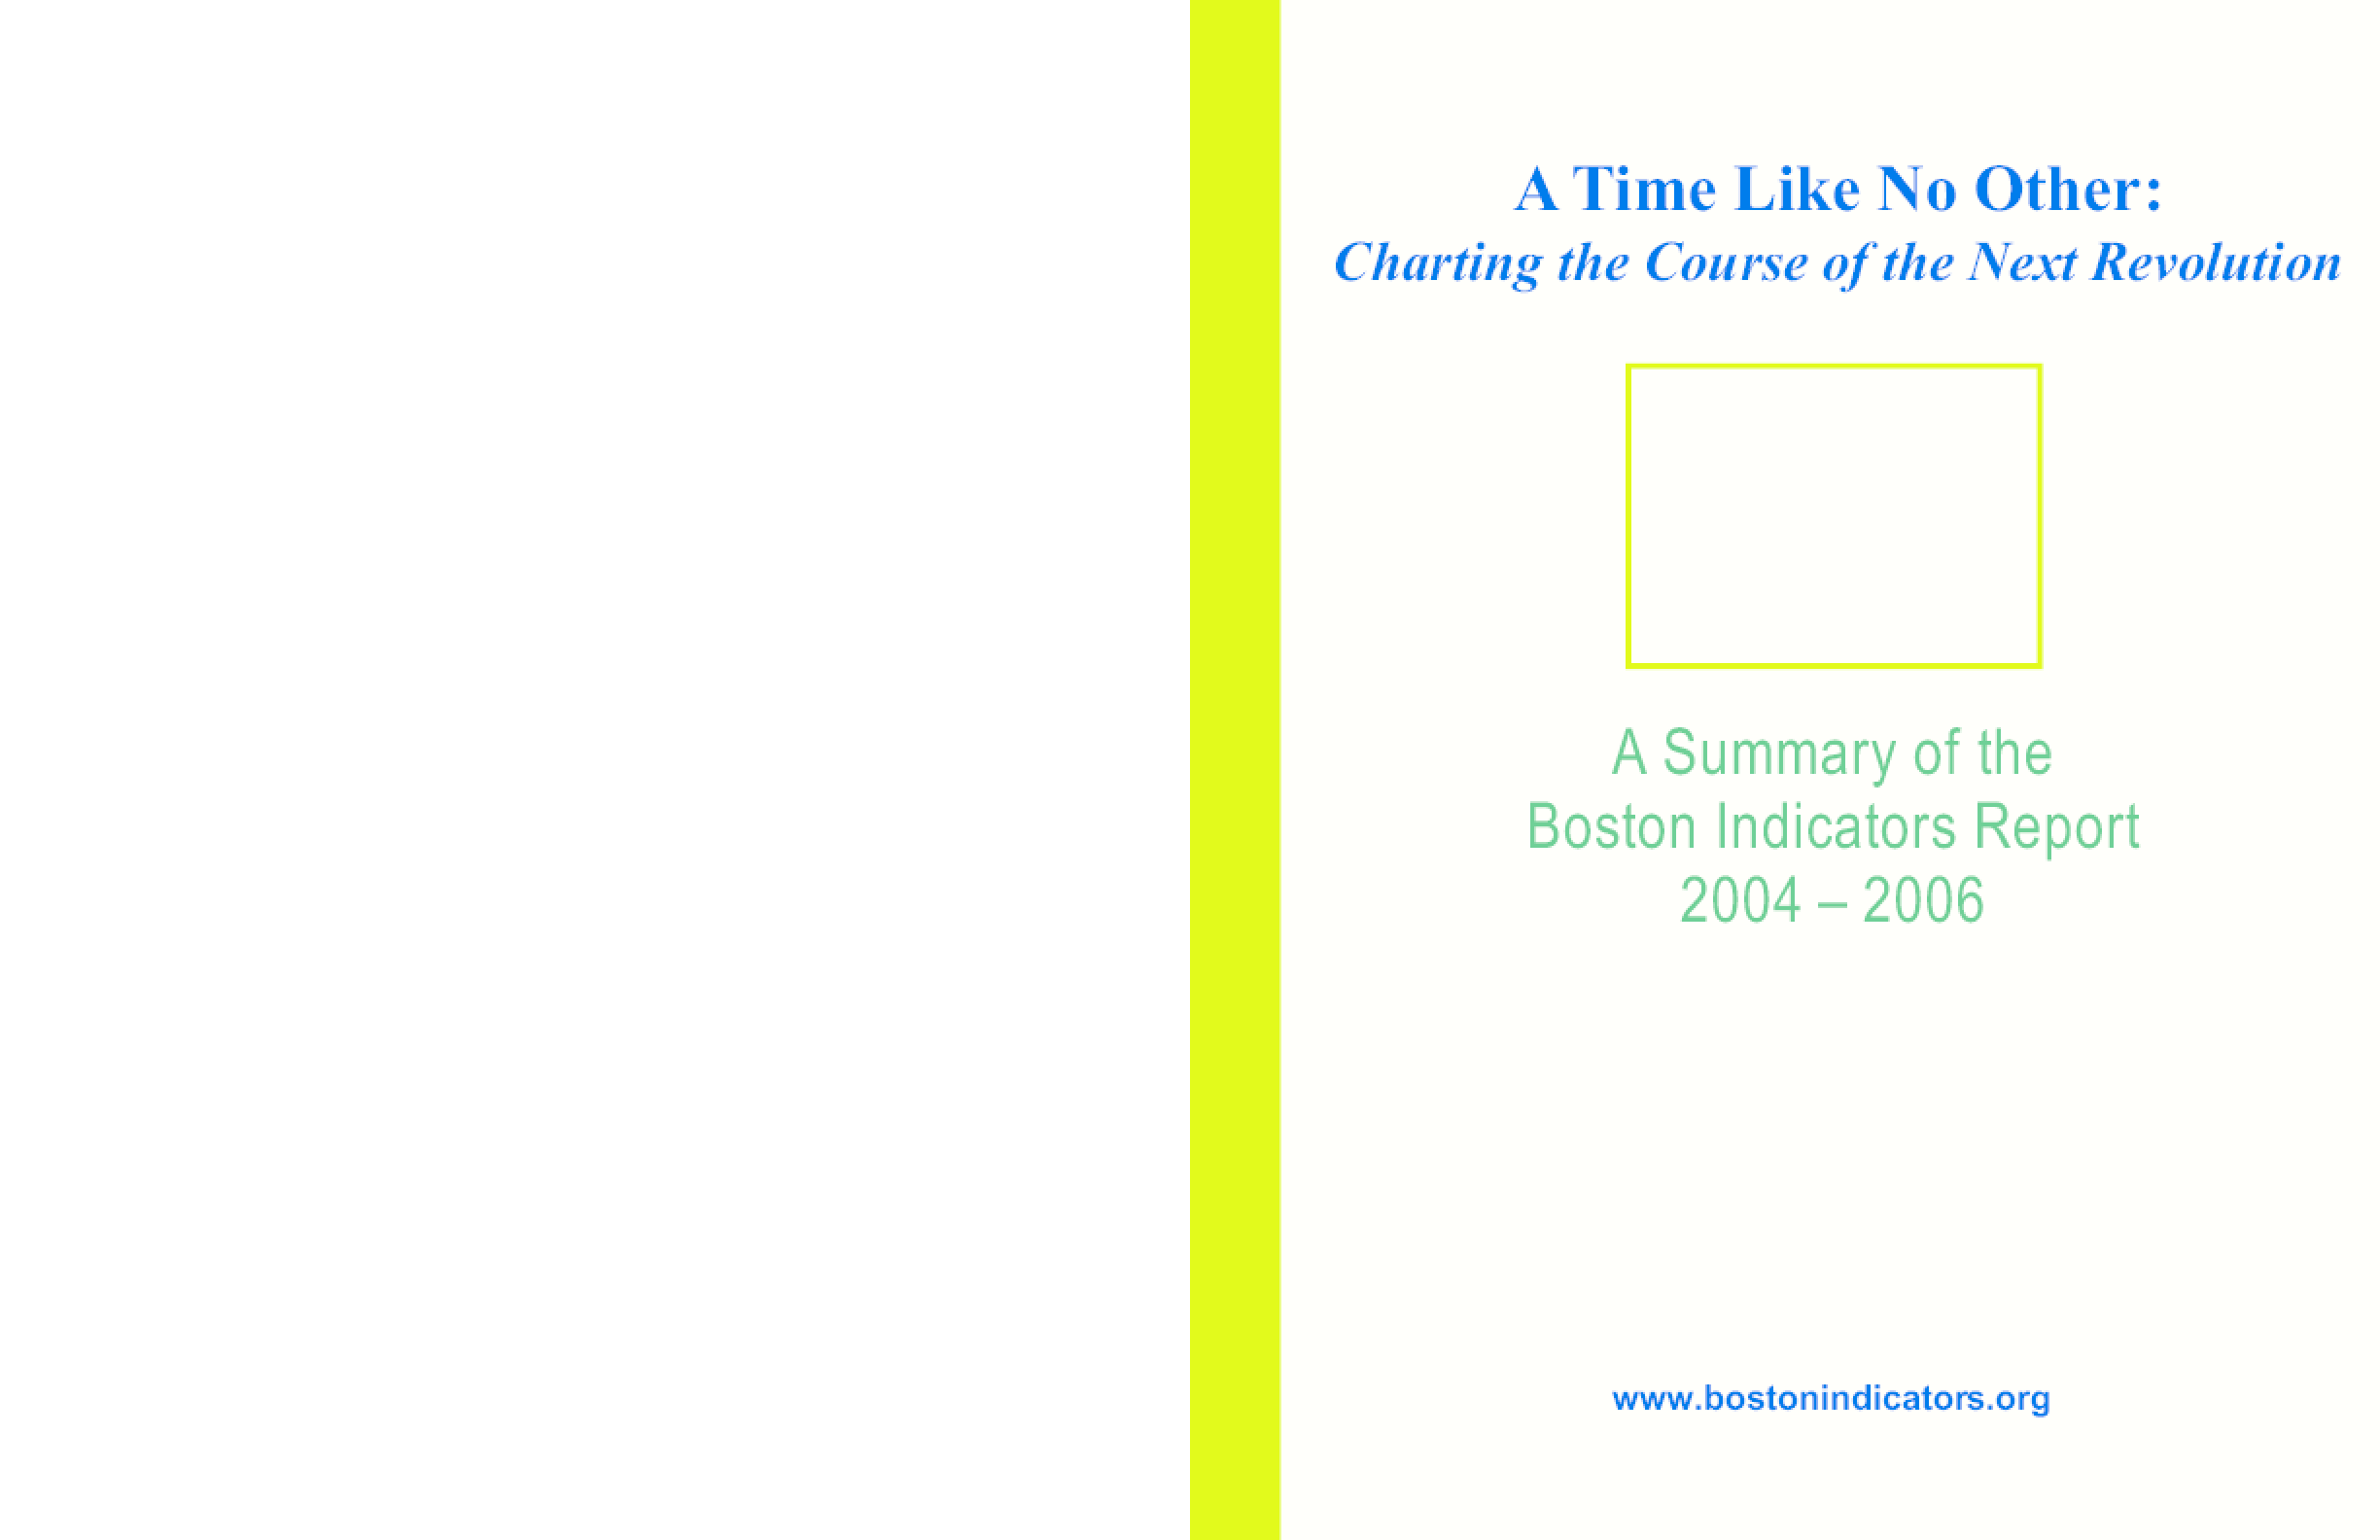 A Time Like No Other: Charting the Course of the Next Revolution - A Summary of the Boston Indicators Report 2004-2006